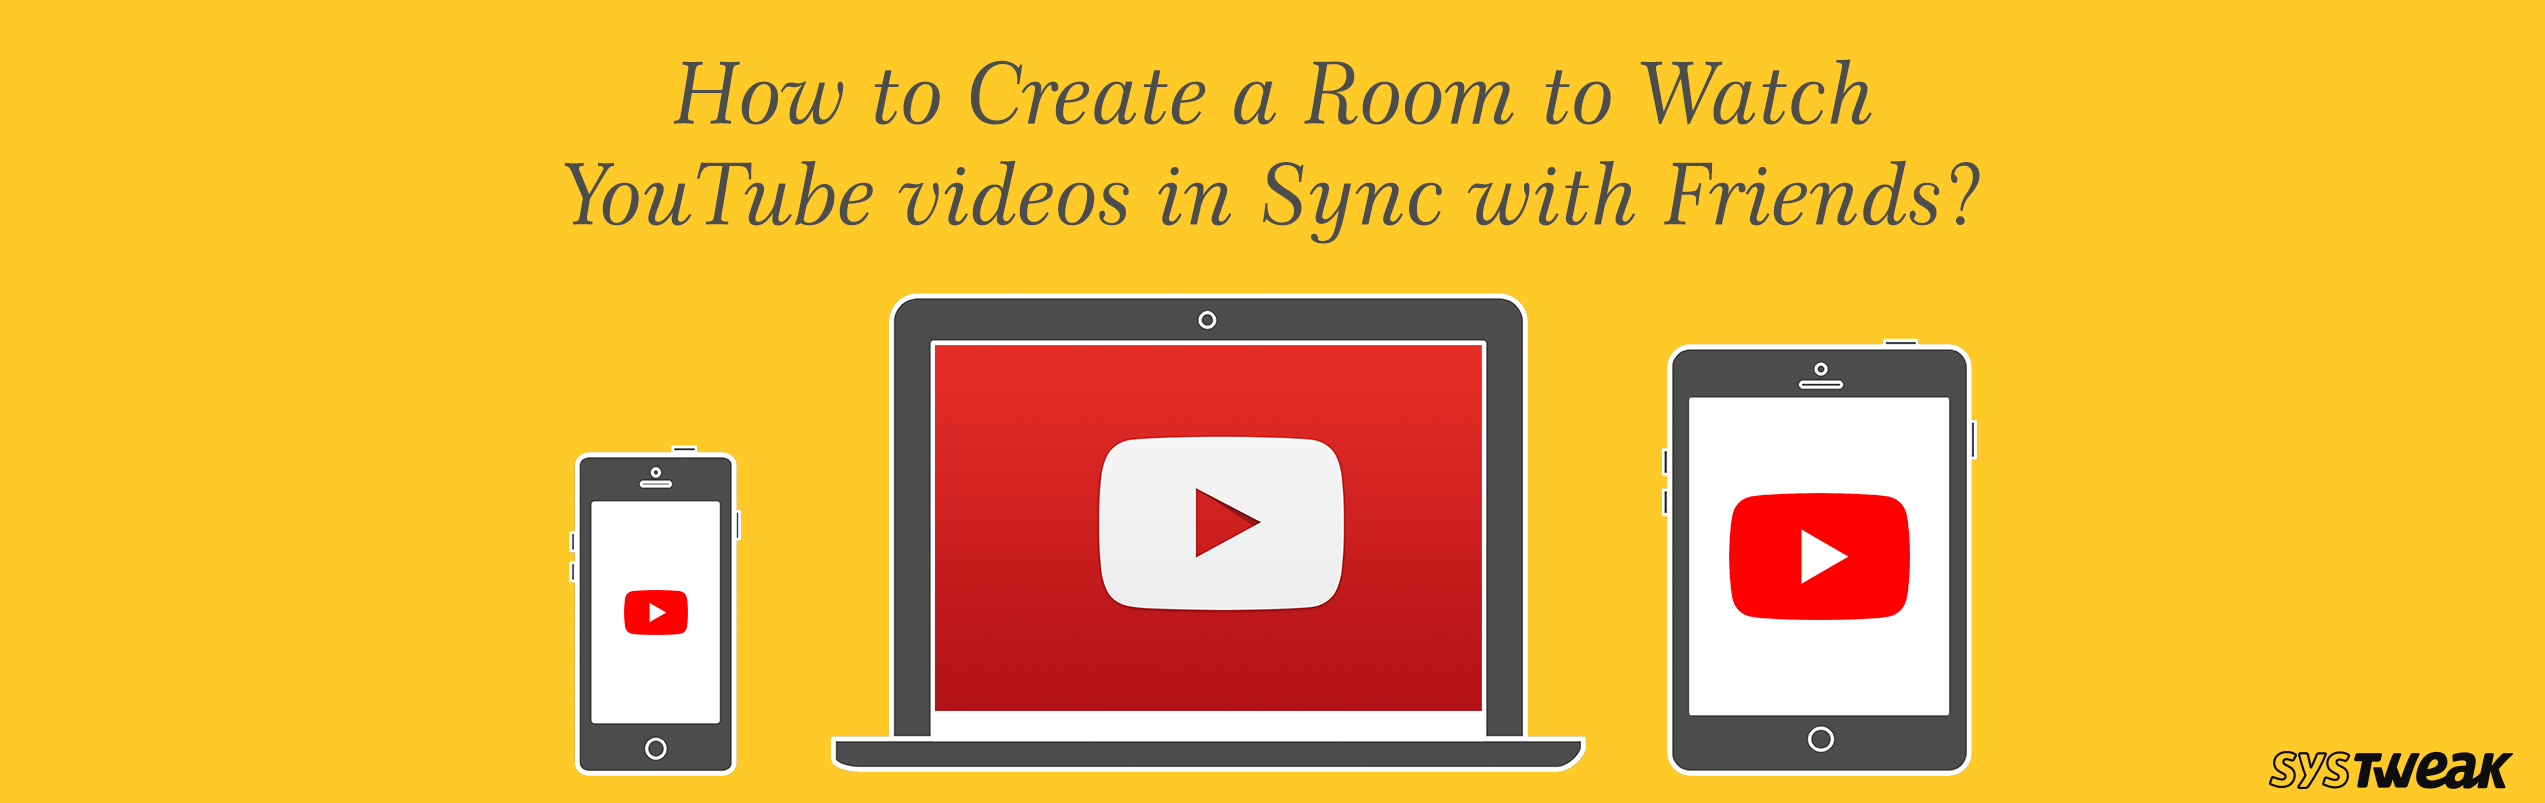 How to Create a Room to Watch YouTube videos in Sync with Friends